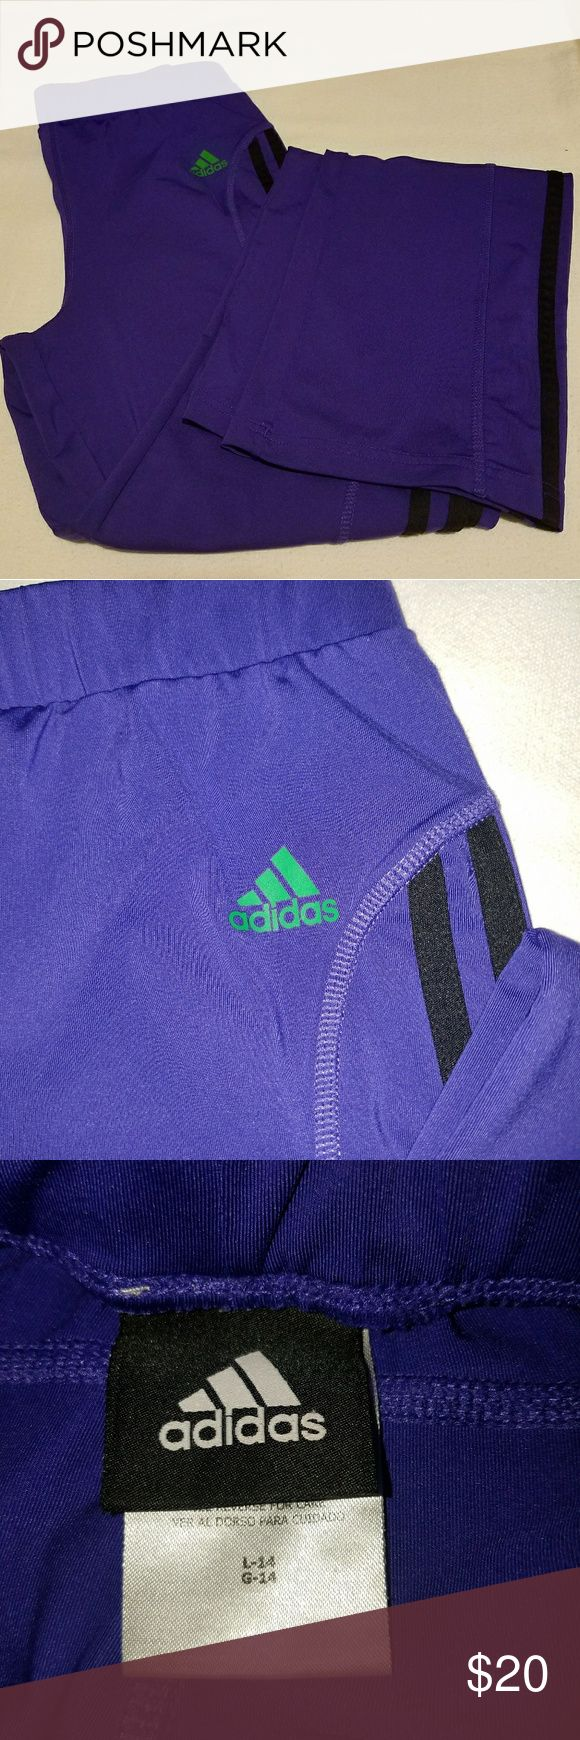 Adidas workout pants Girls 14 or ladies xs purple workout pants, by Adidas. Full length, straight leg. EUC. Smoke free/pet free home. All offers always welcome. adidas Bottoms Sweatpants & Joggers